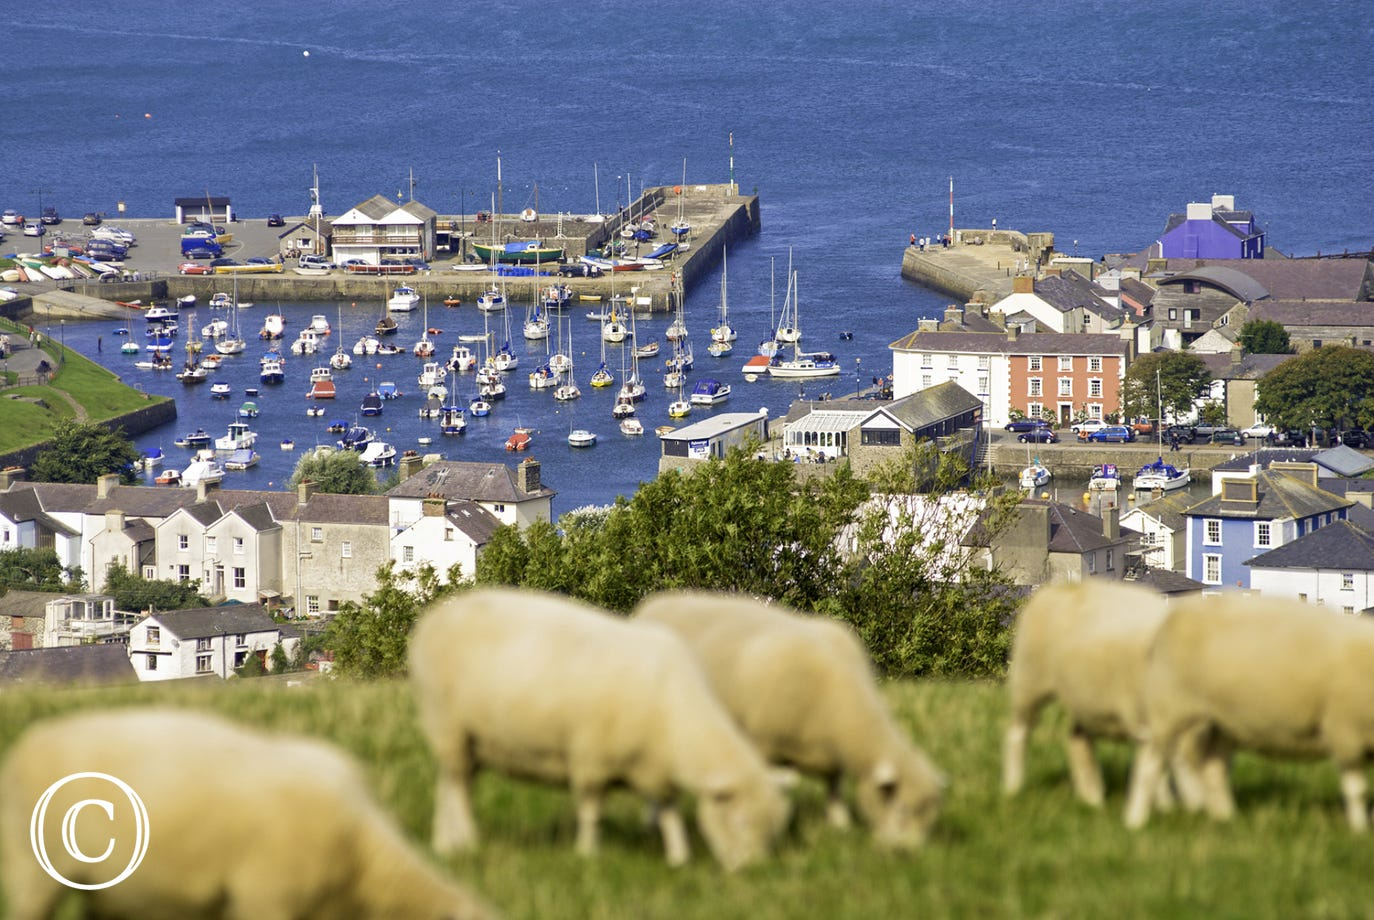 The beautiful harbour town of Aberaeron is just 8 miles away.